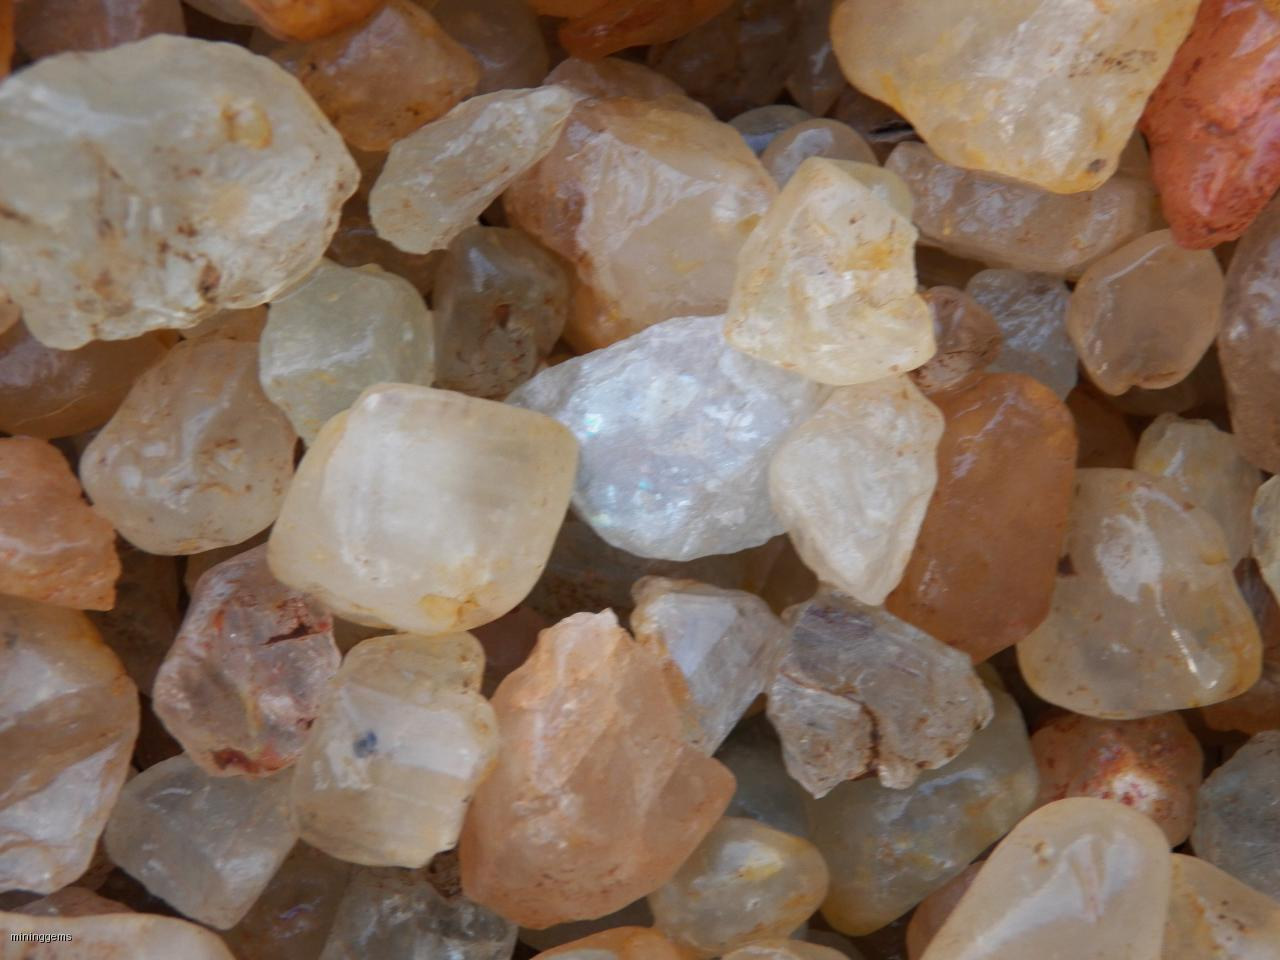 Plus a FREE Faceted Gemstone Details about  /500 Carat Lots of Citrine Topaz Rough